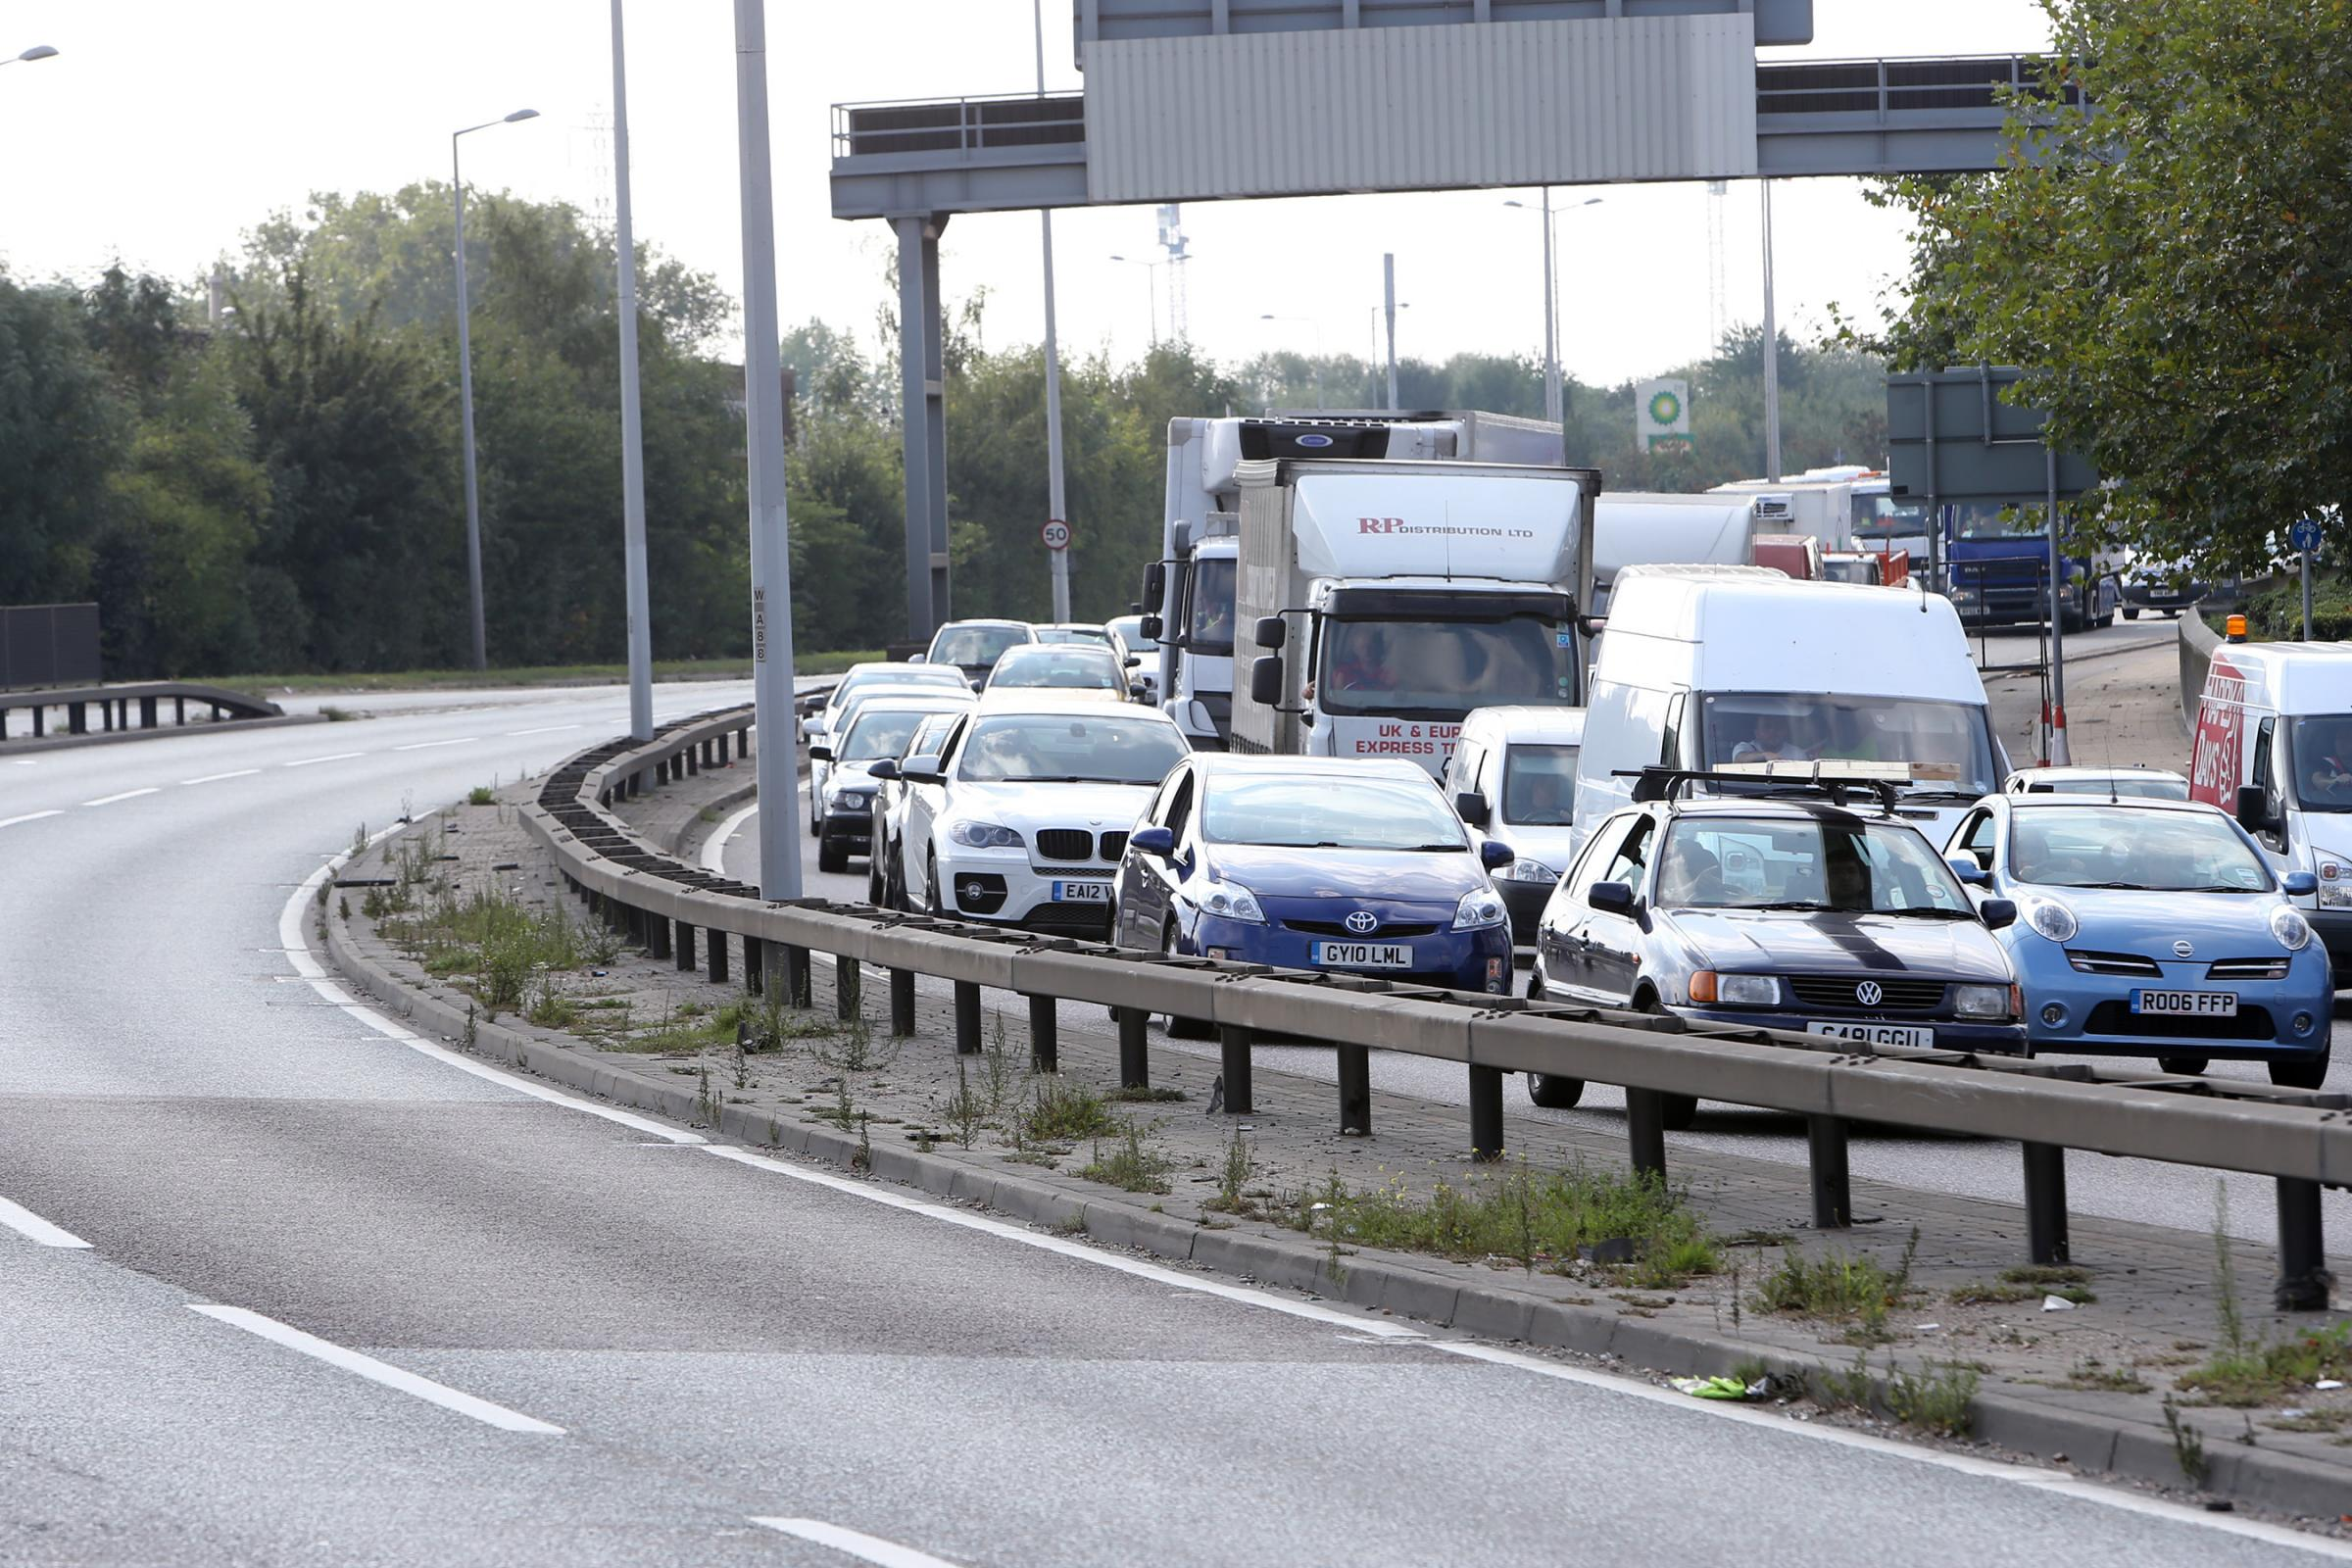 Watch out for delays on the A1 and A406 on your commute home today